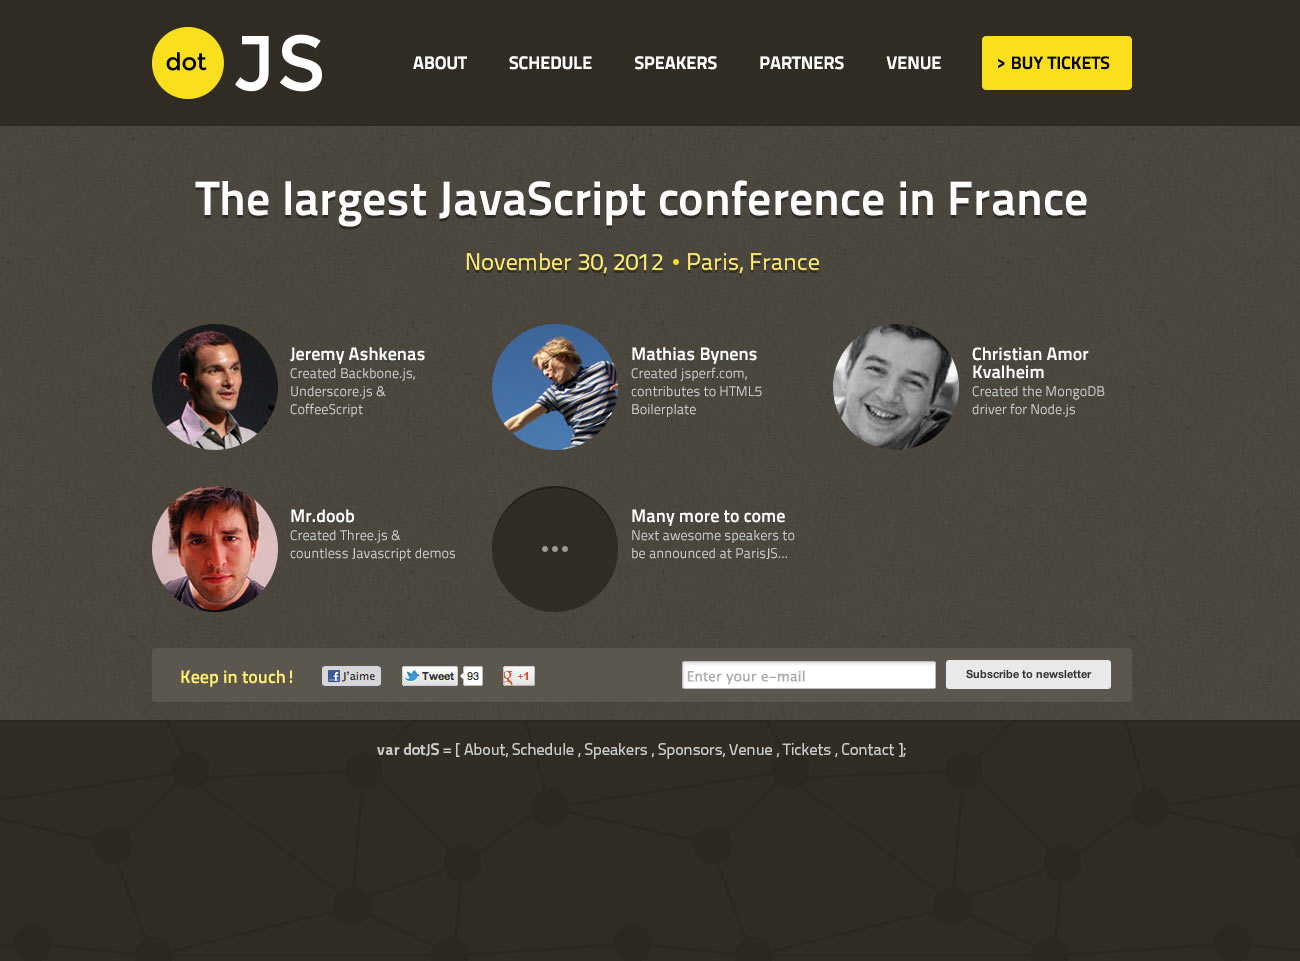 DotJS website